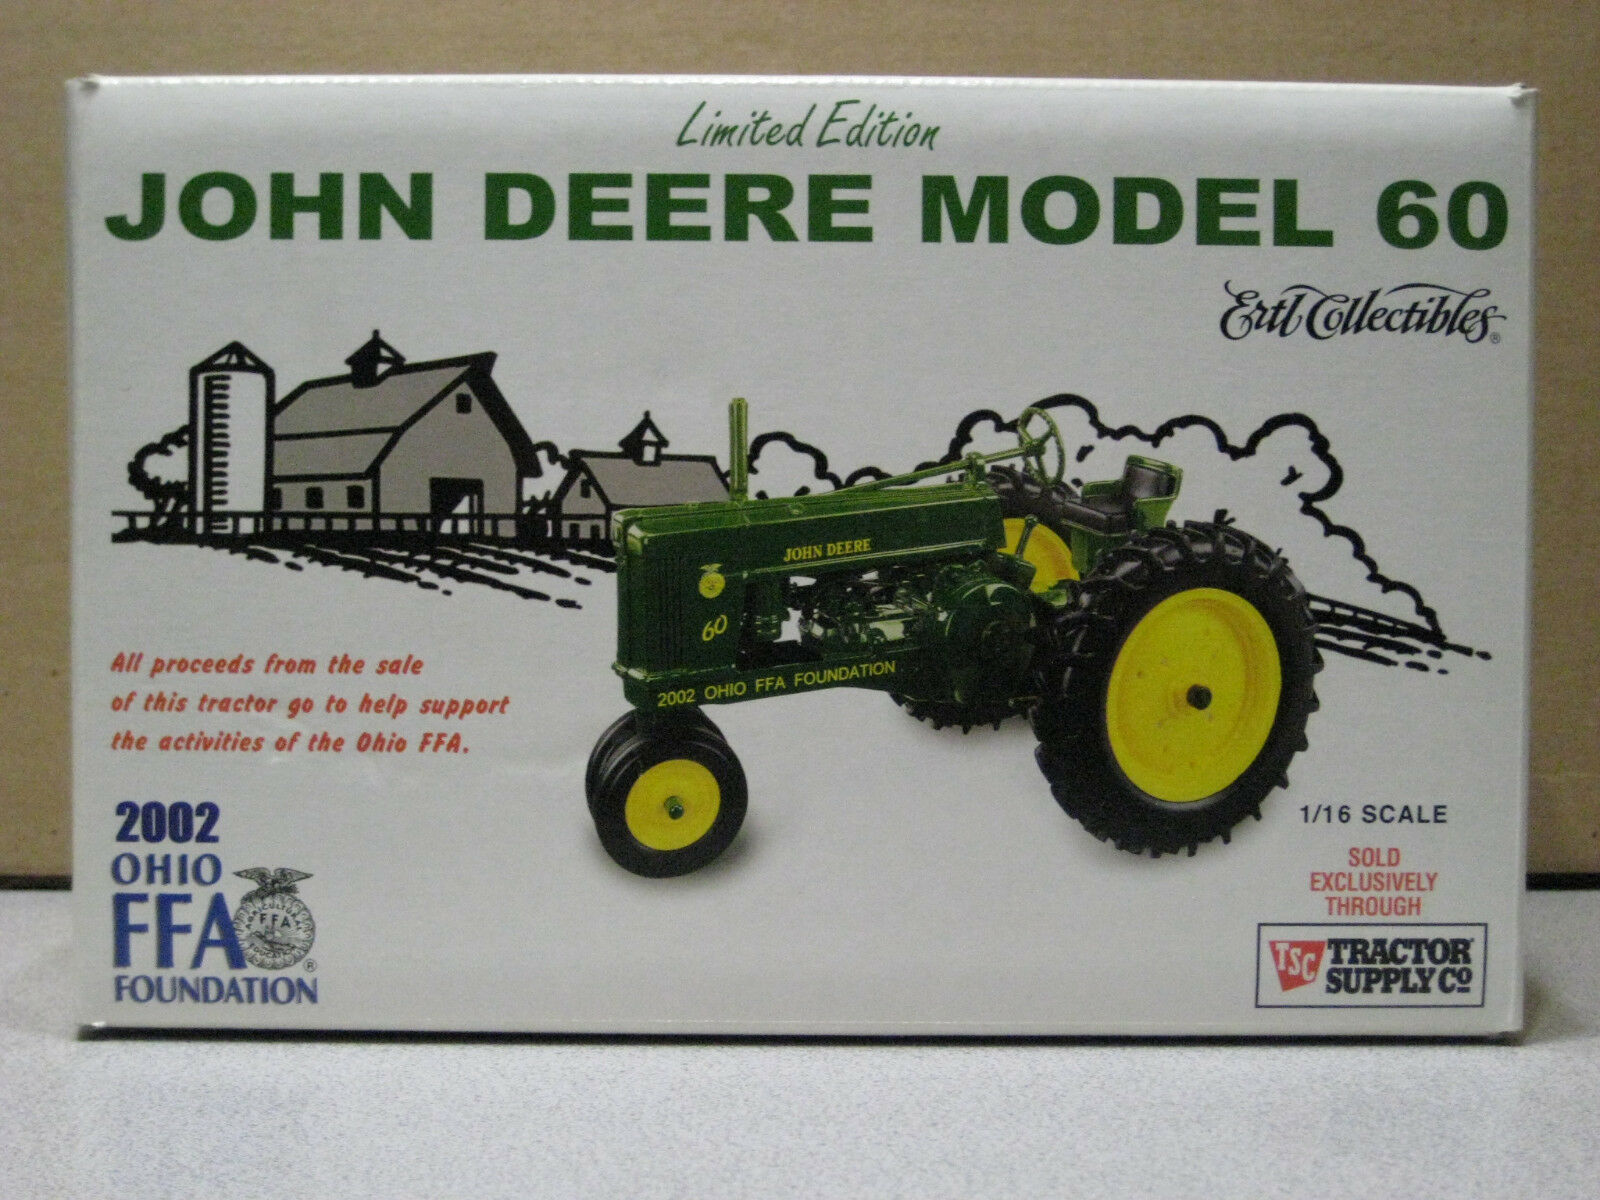 John Deere JD 60 tracteur Limited 2002 OHIO FFA Edition New in Box 1 16